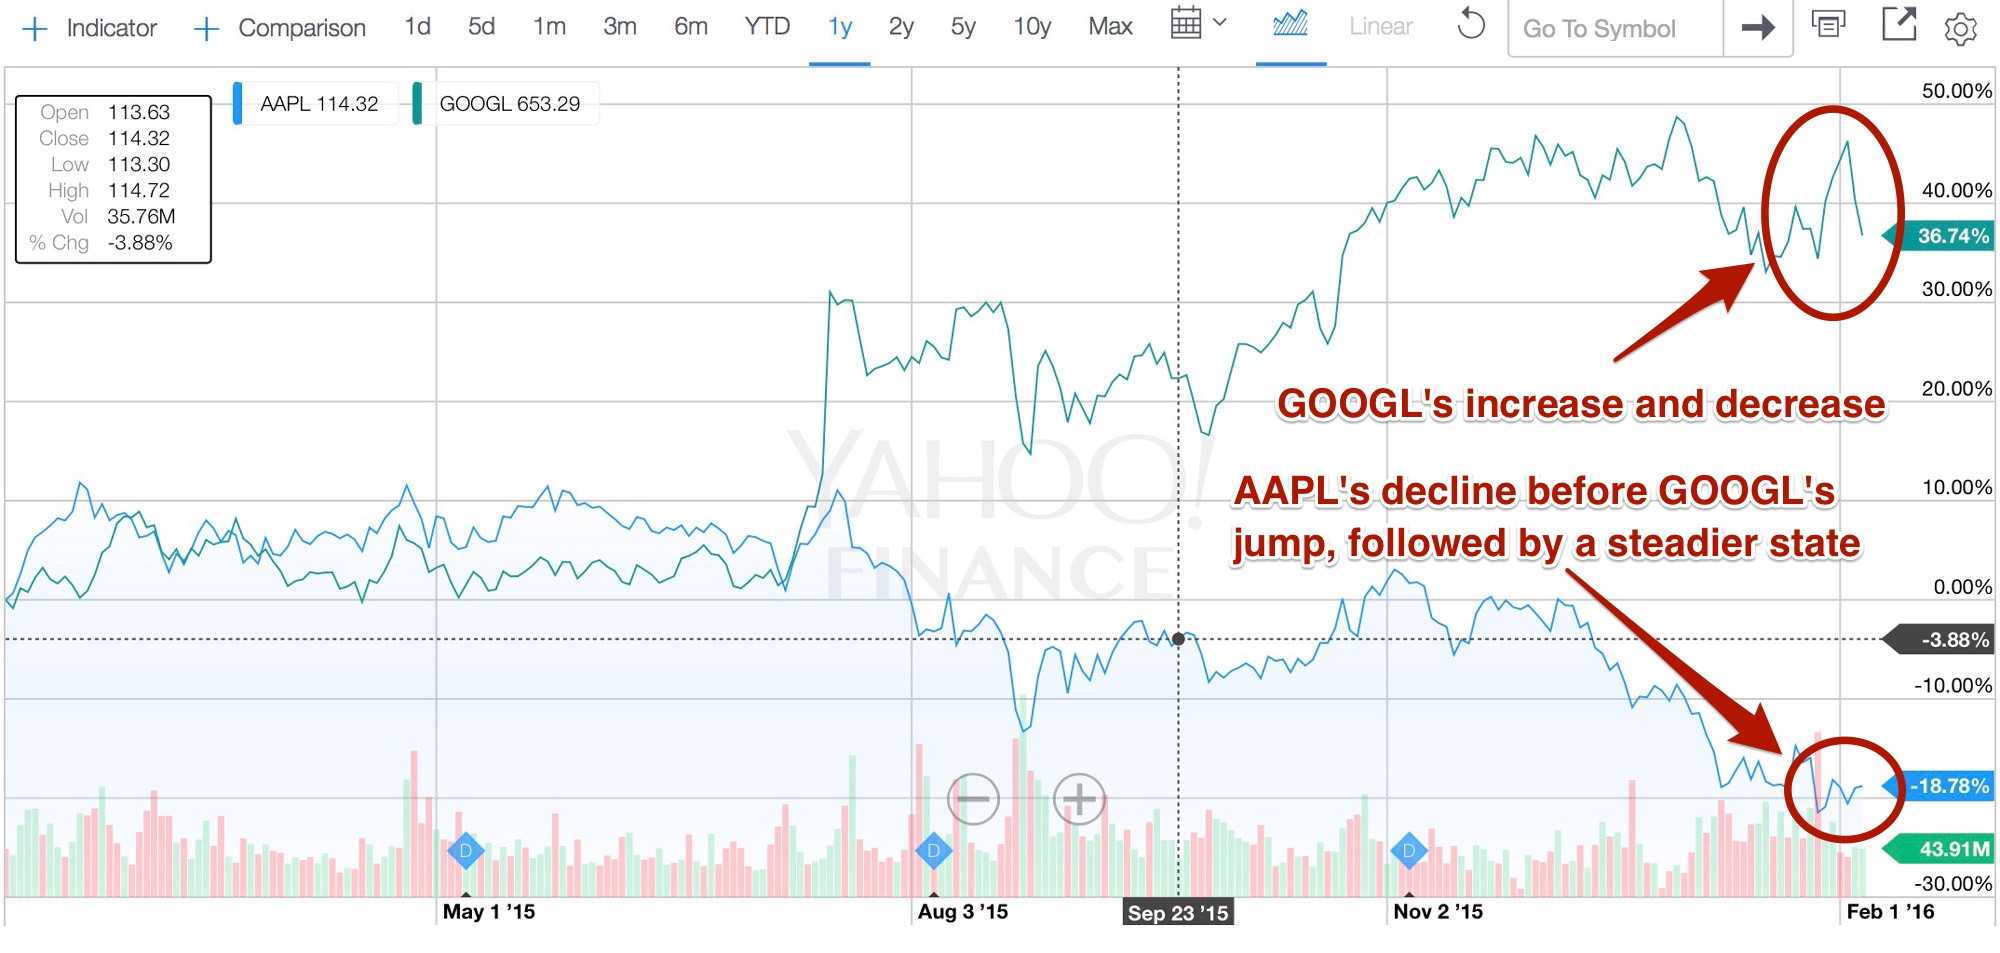 AAPL vs. GOOGL Comparison Chart One Year